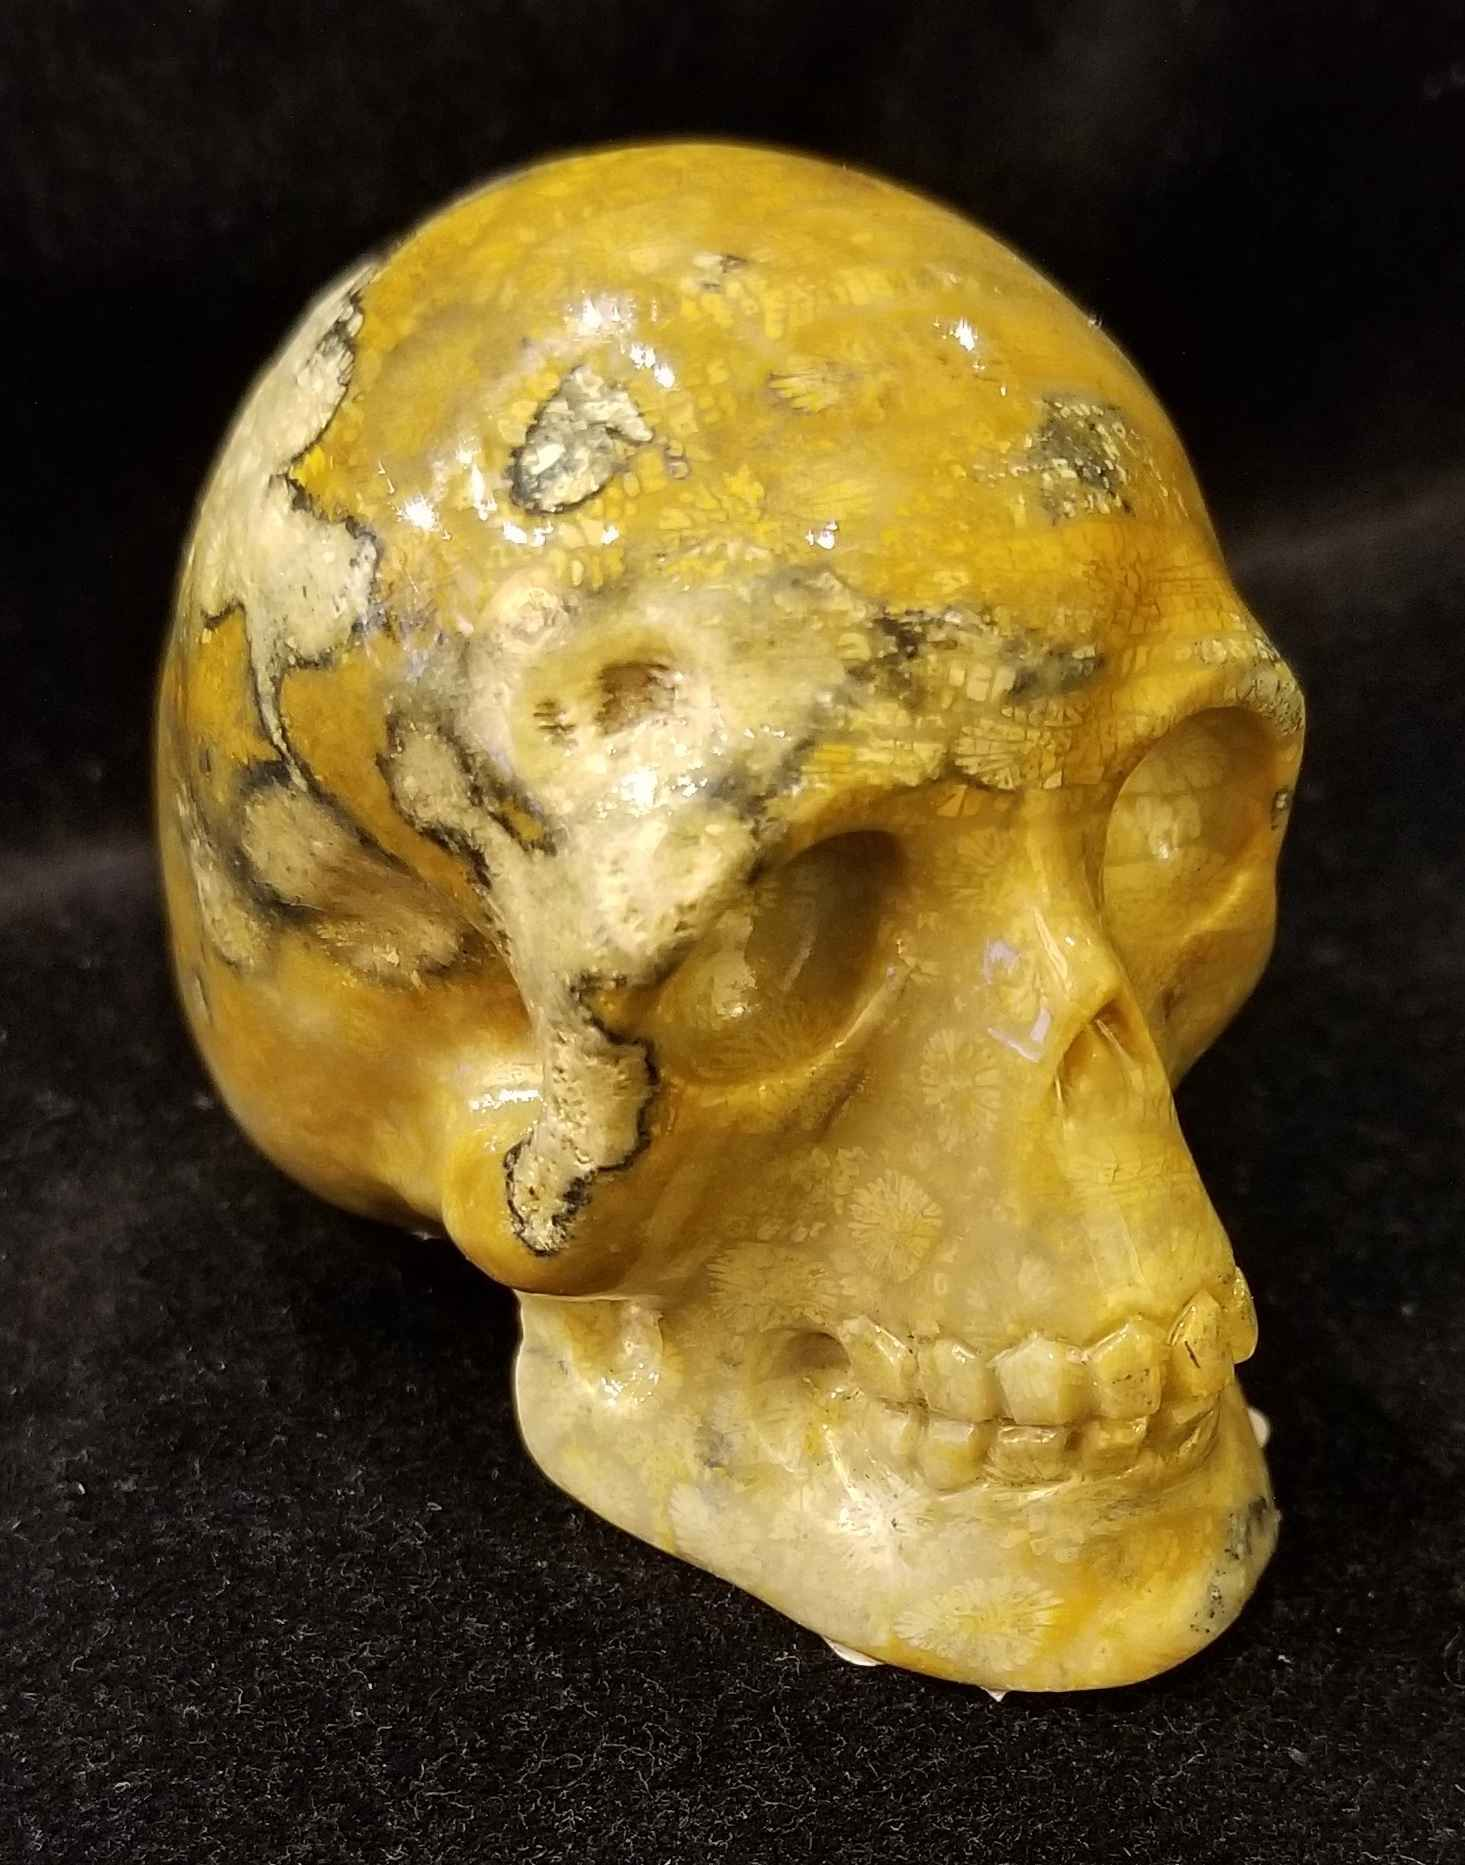 Fossil Coral Skull by   Starborn - Masterpiece Online